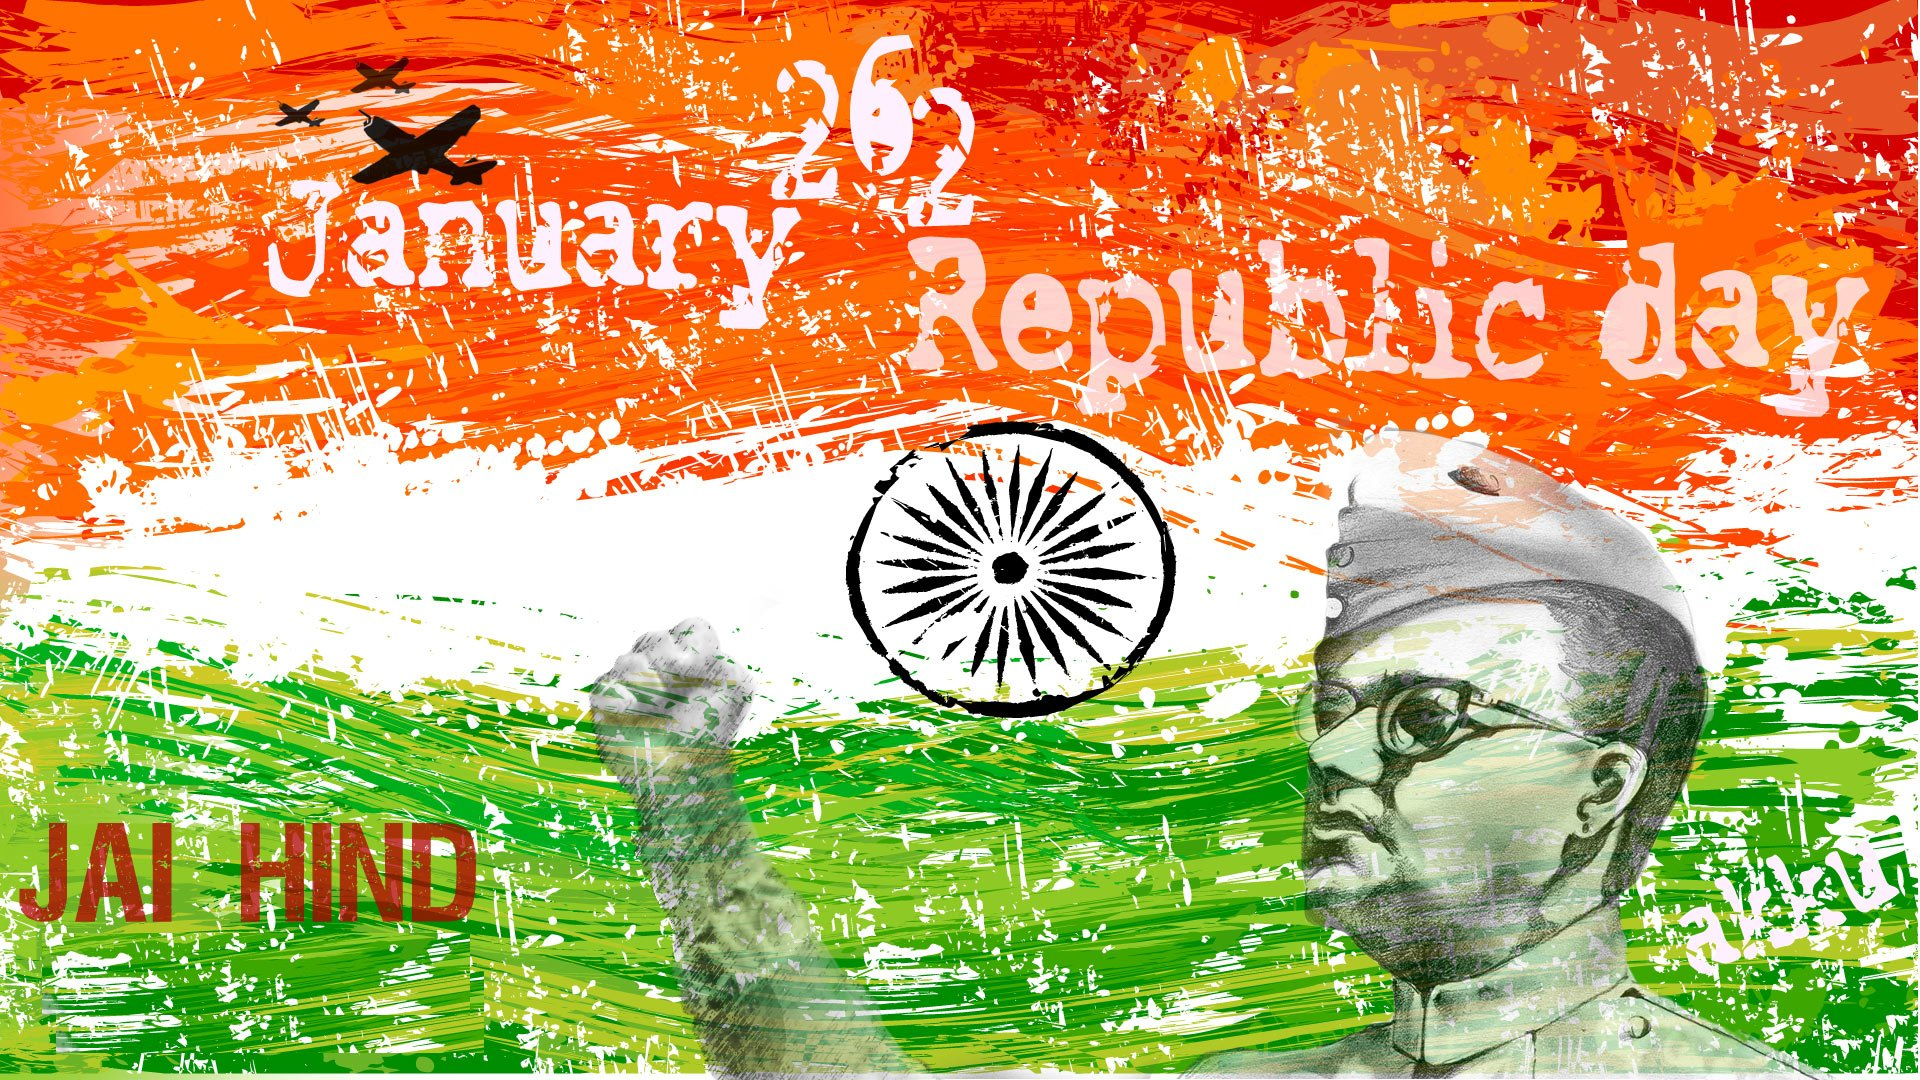 republic day wallpapers hd images download for pc happy republic 1920x1080